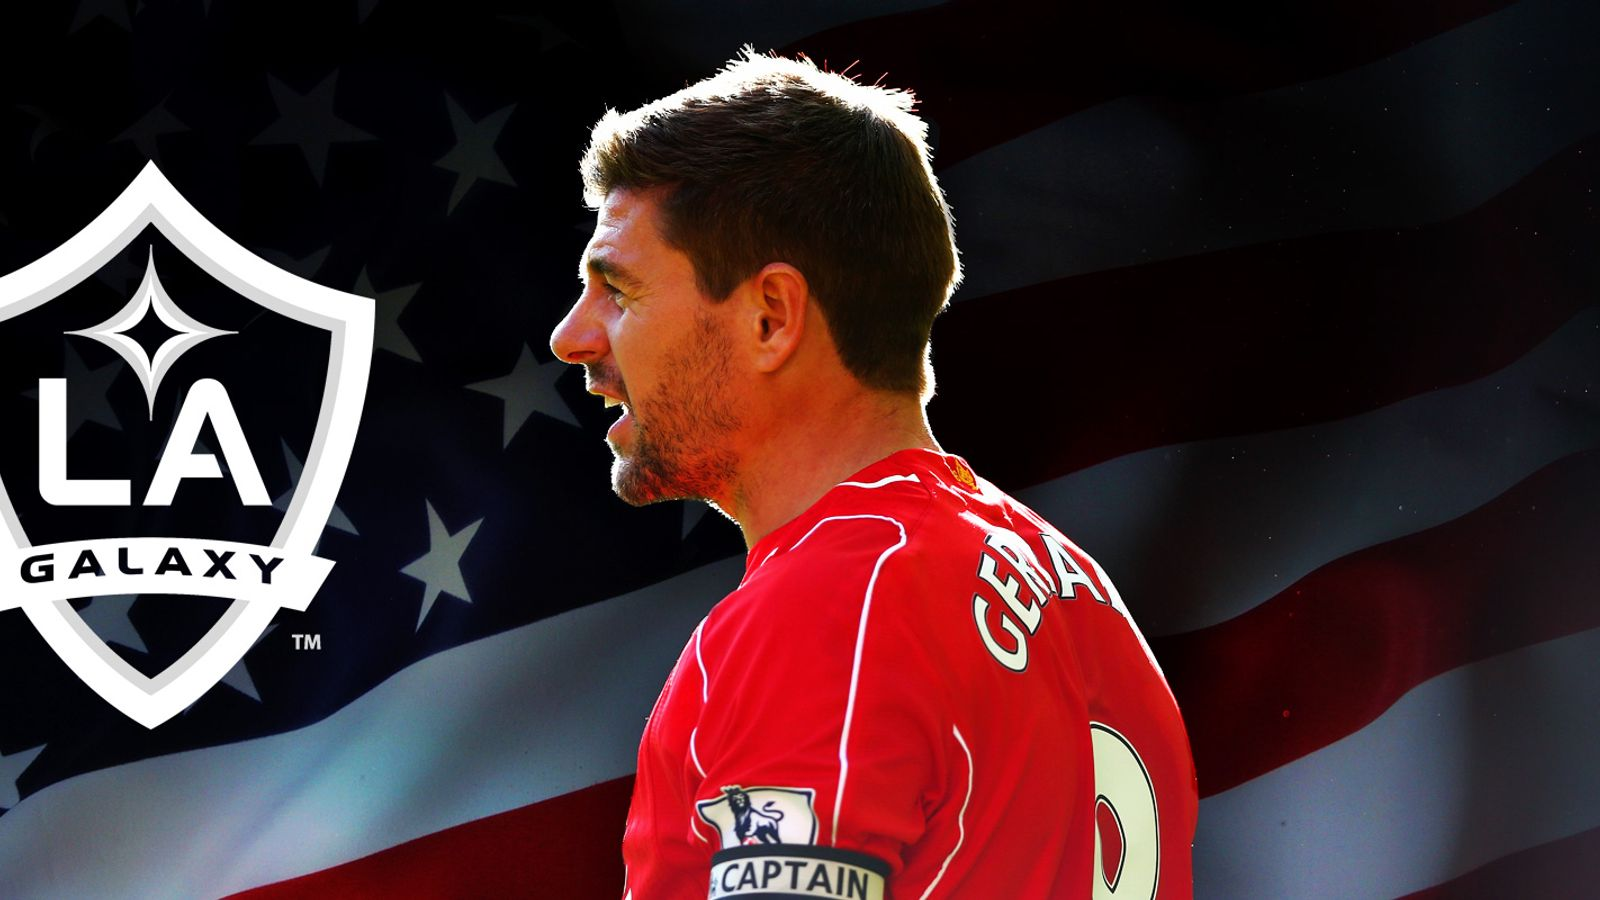 863a311c463 Steven Gerrard  What he can expect to find when he arrives at LA Galaxy in Major  League Soccer